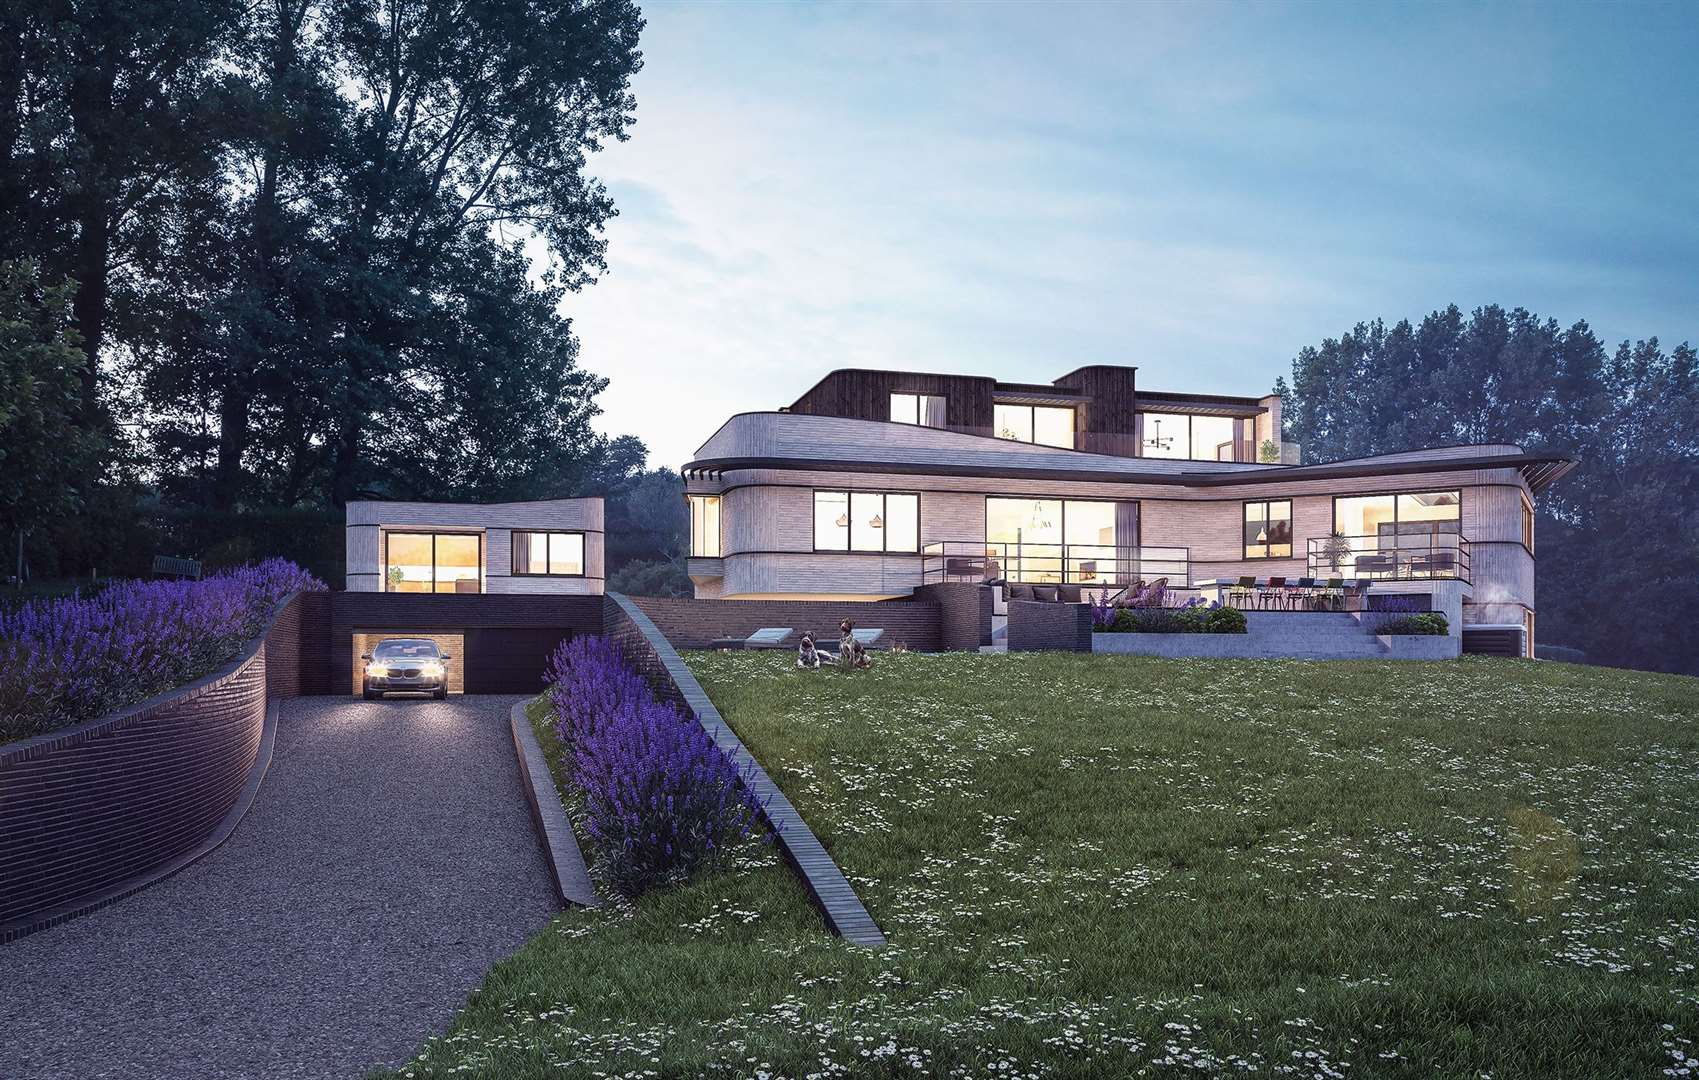 It will include four bedrooms, a swimming pool and annexe over the garage. Picture: Hollaway